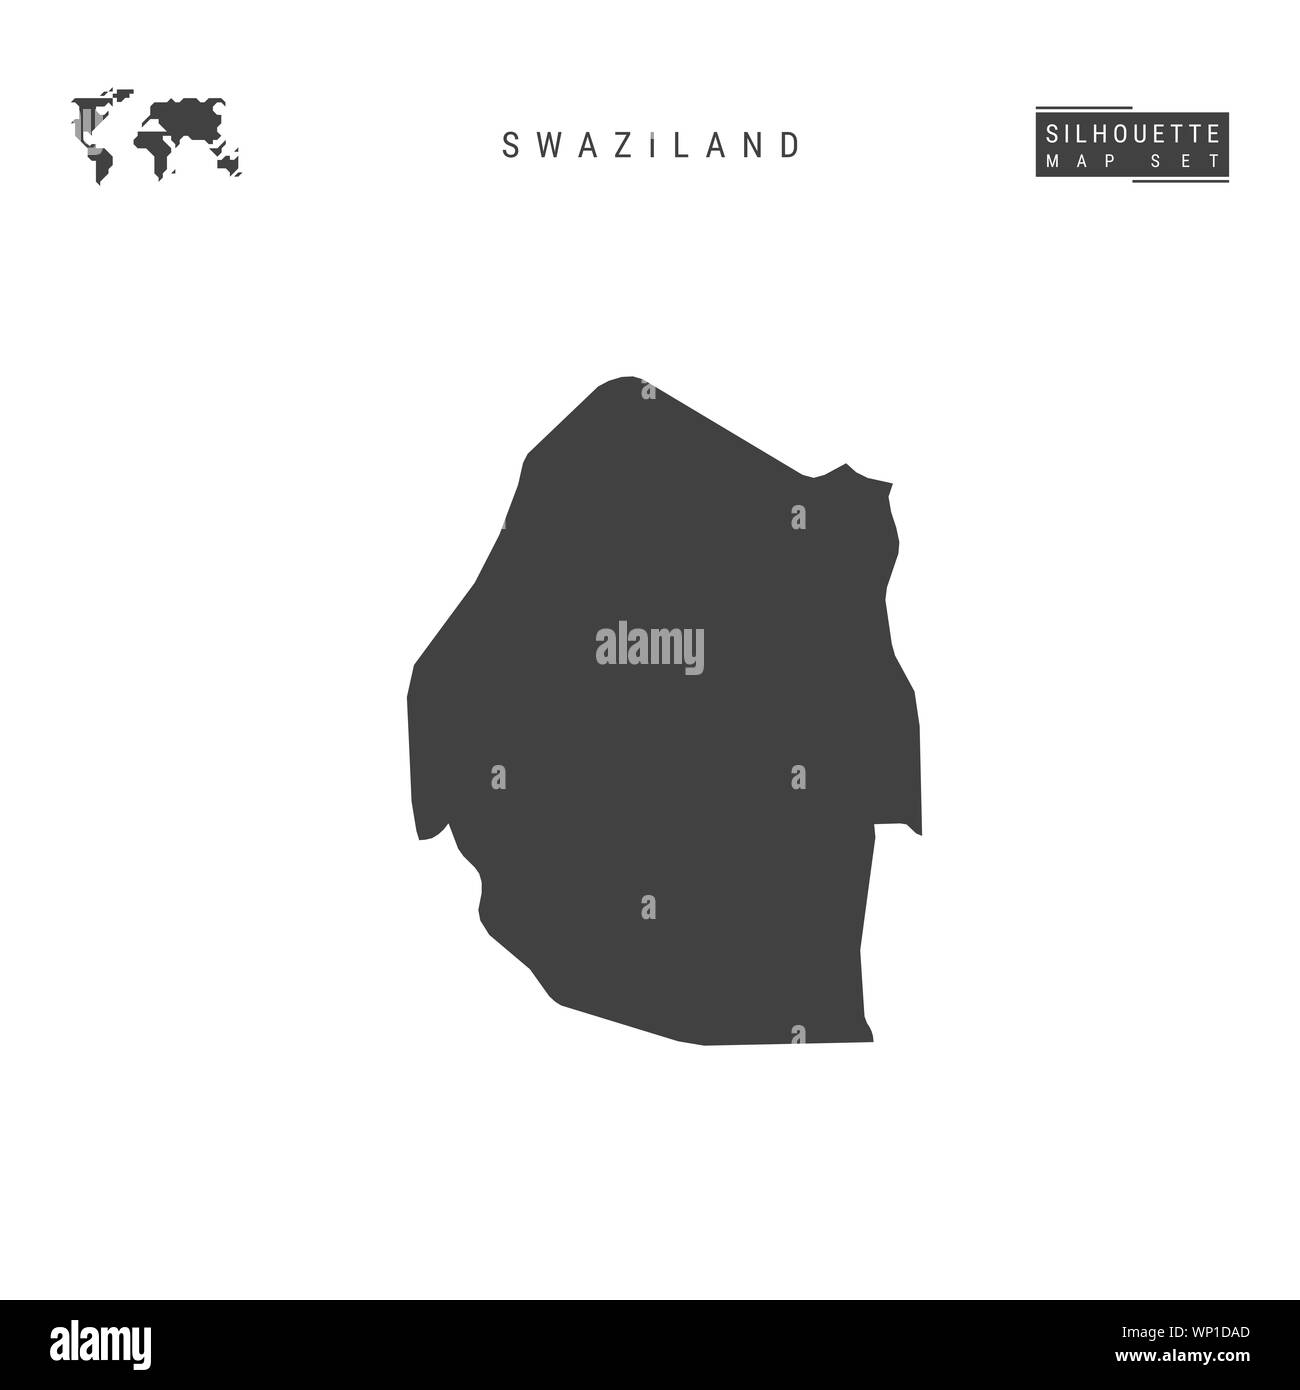 Swaziland Blank Map Isolated on White Background. High-Detailed Black Silhouette Map of Swaziland. Stock Photo